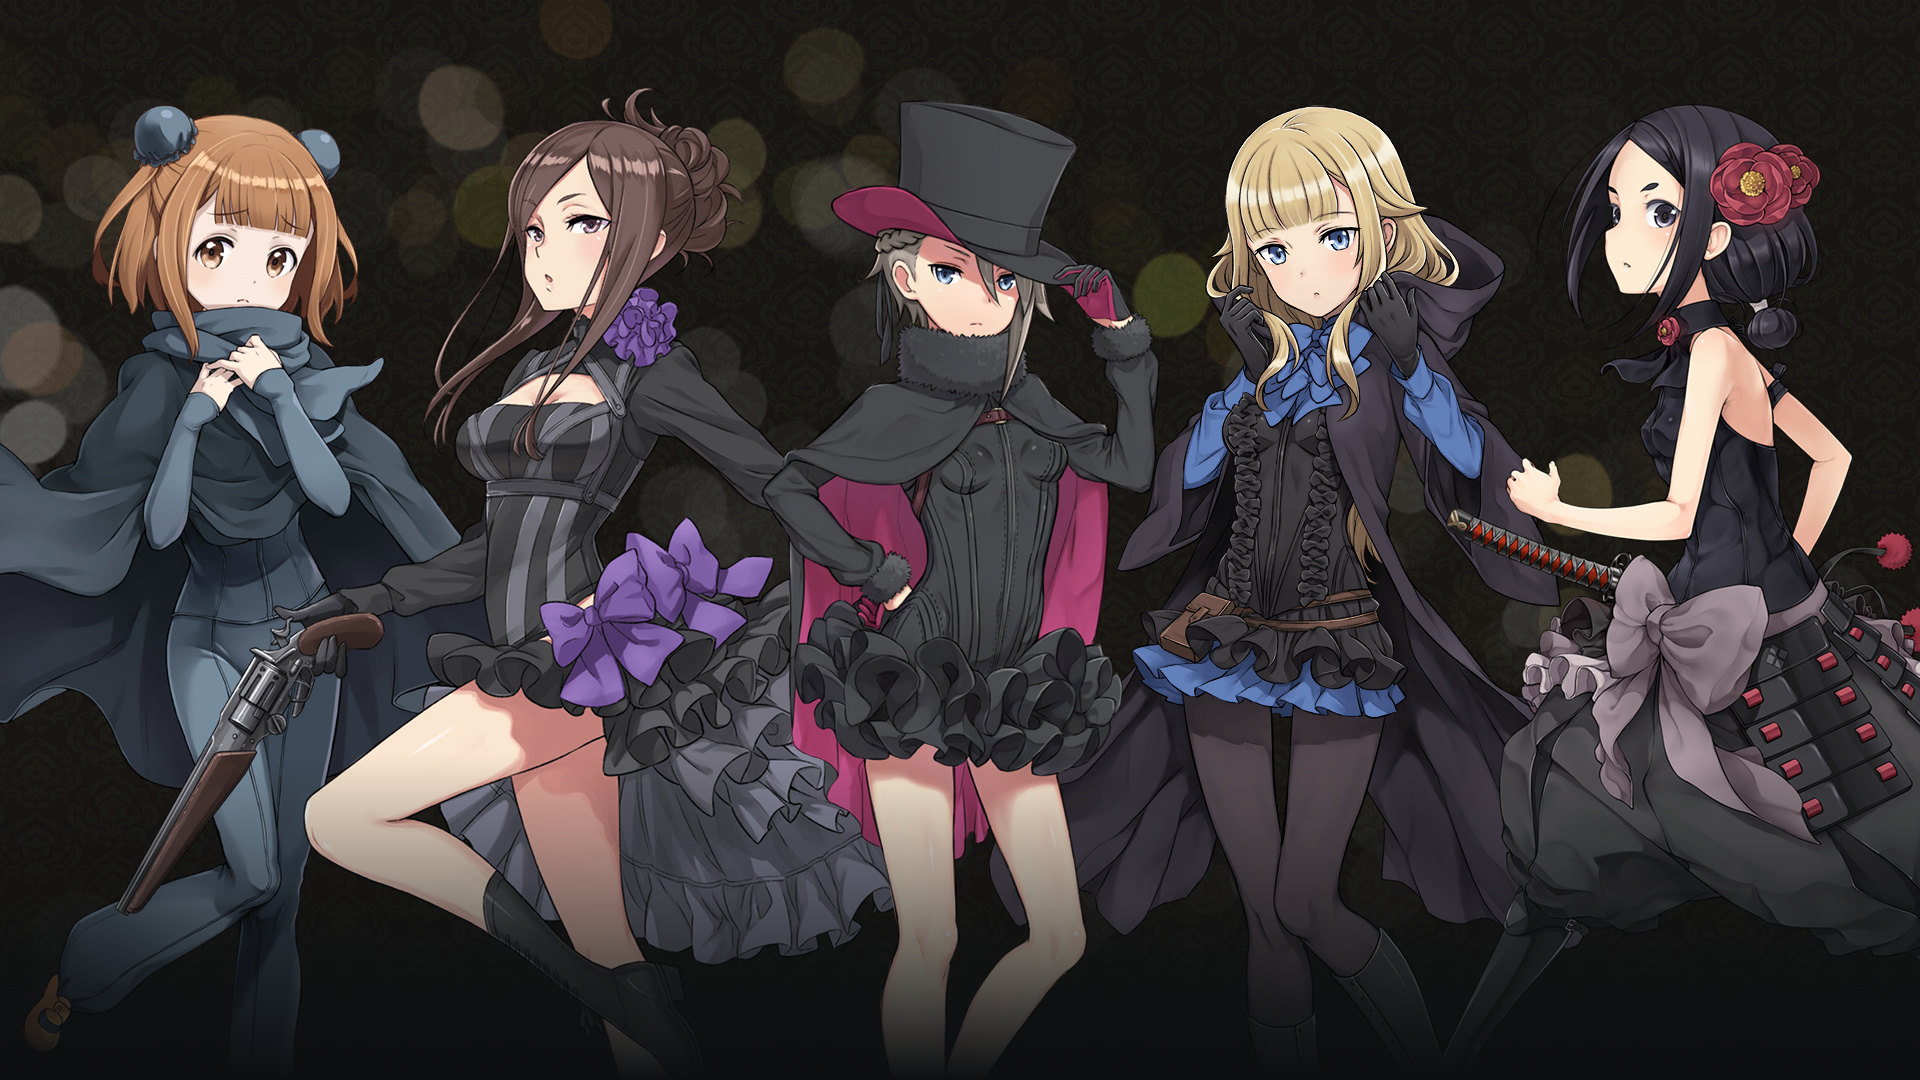 15 princess principal hd wallpapers background images - Images princesse ...